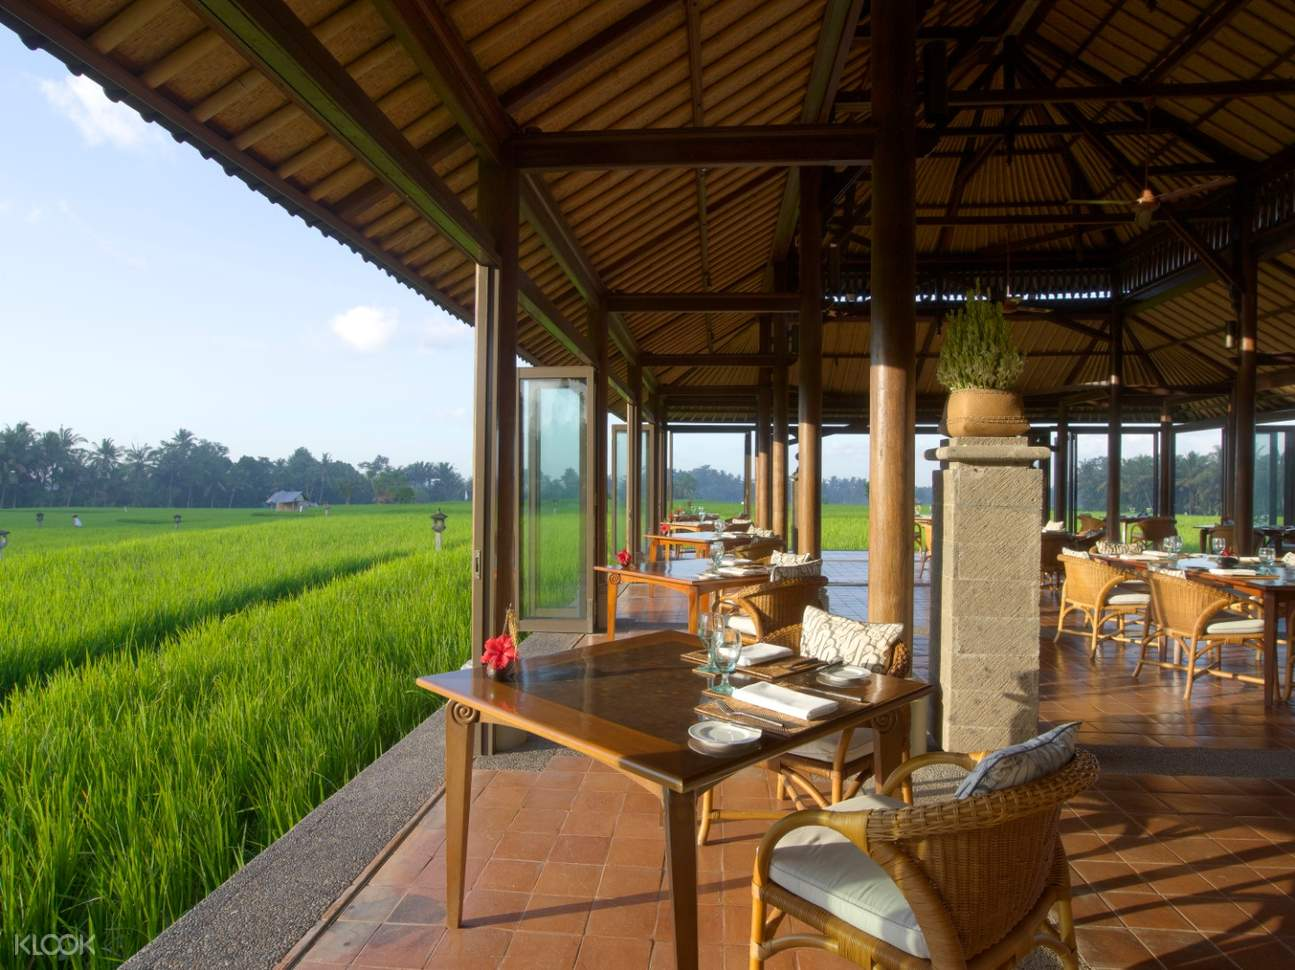 interior of the chedi restaurant with rice paddie in the background